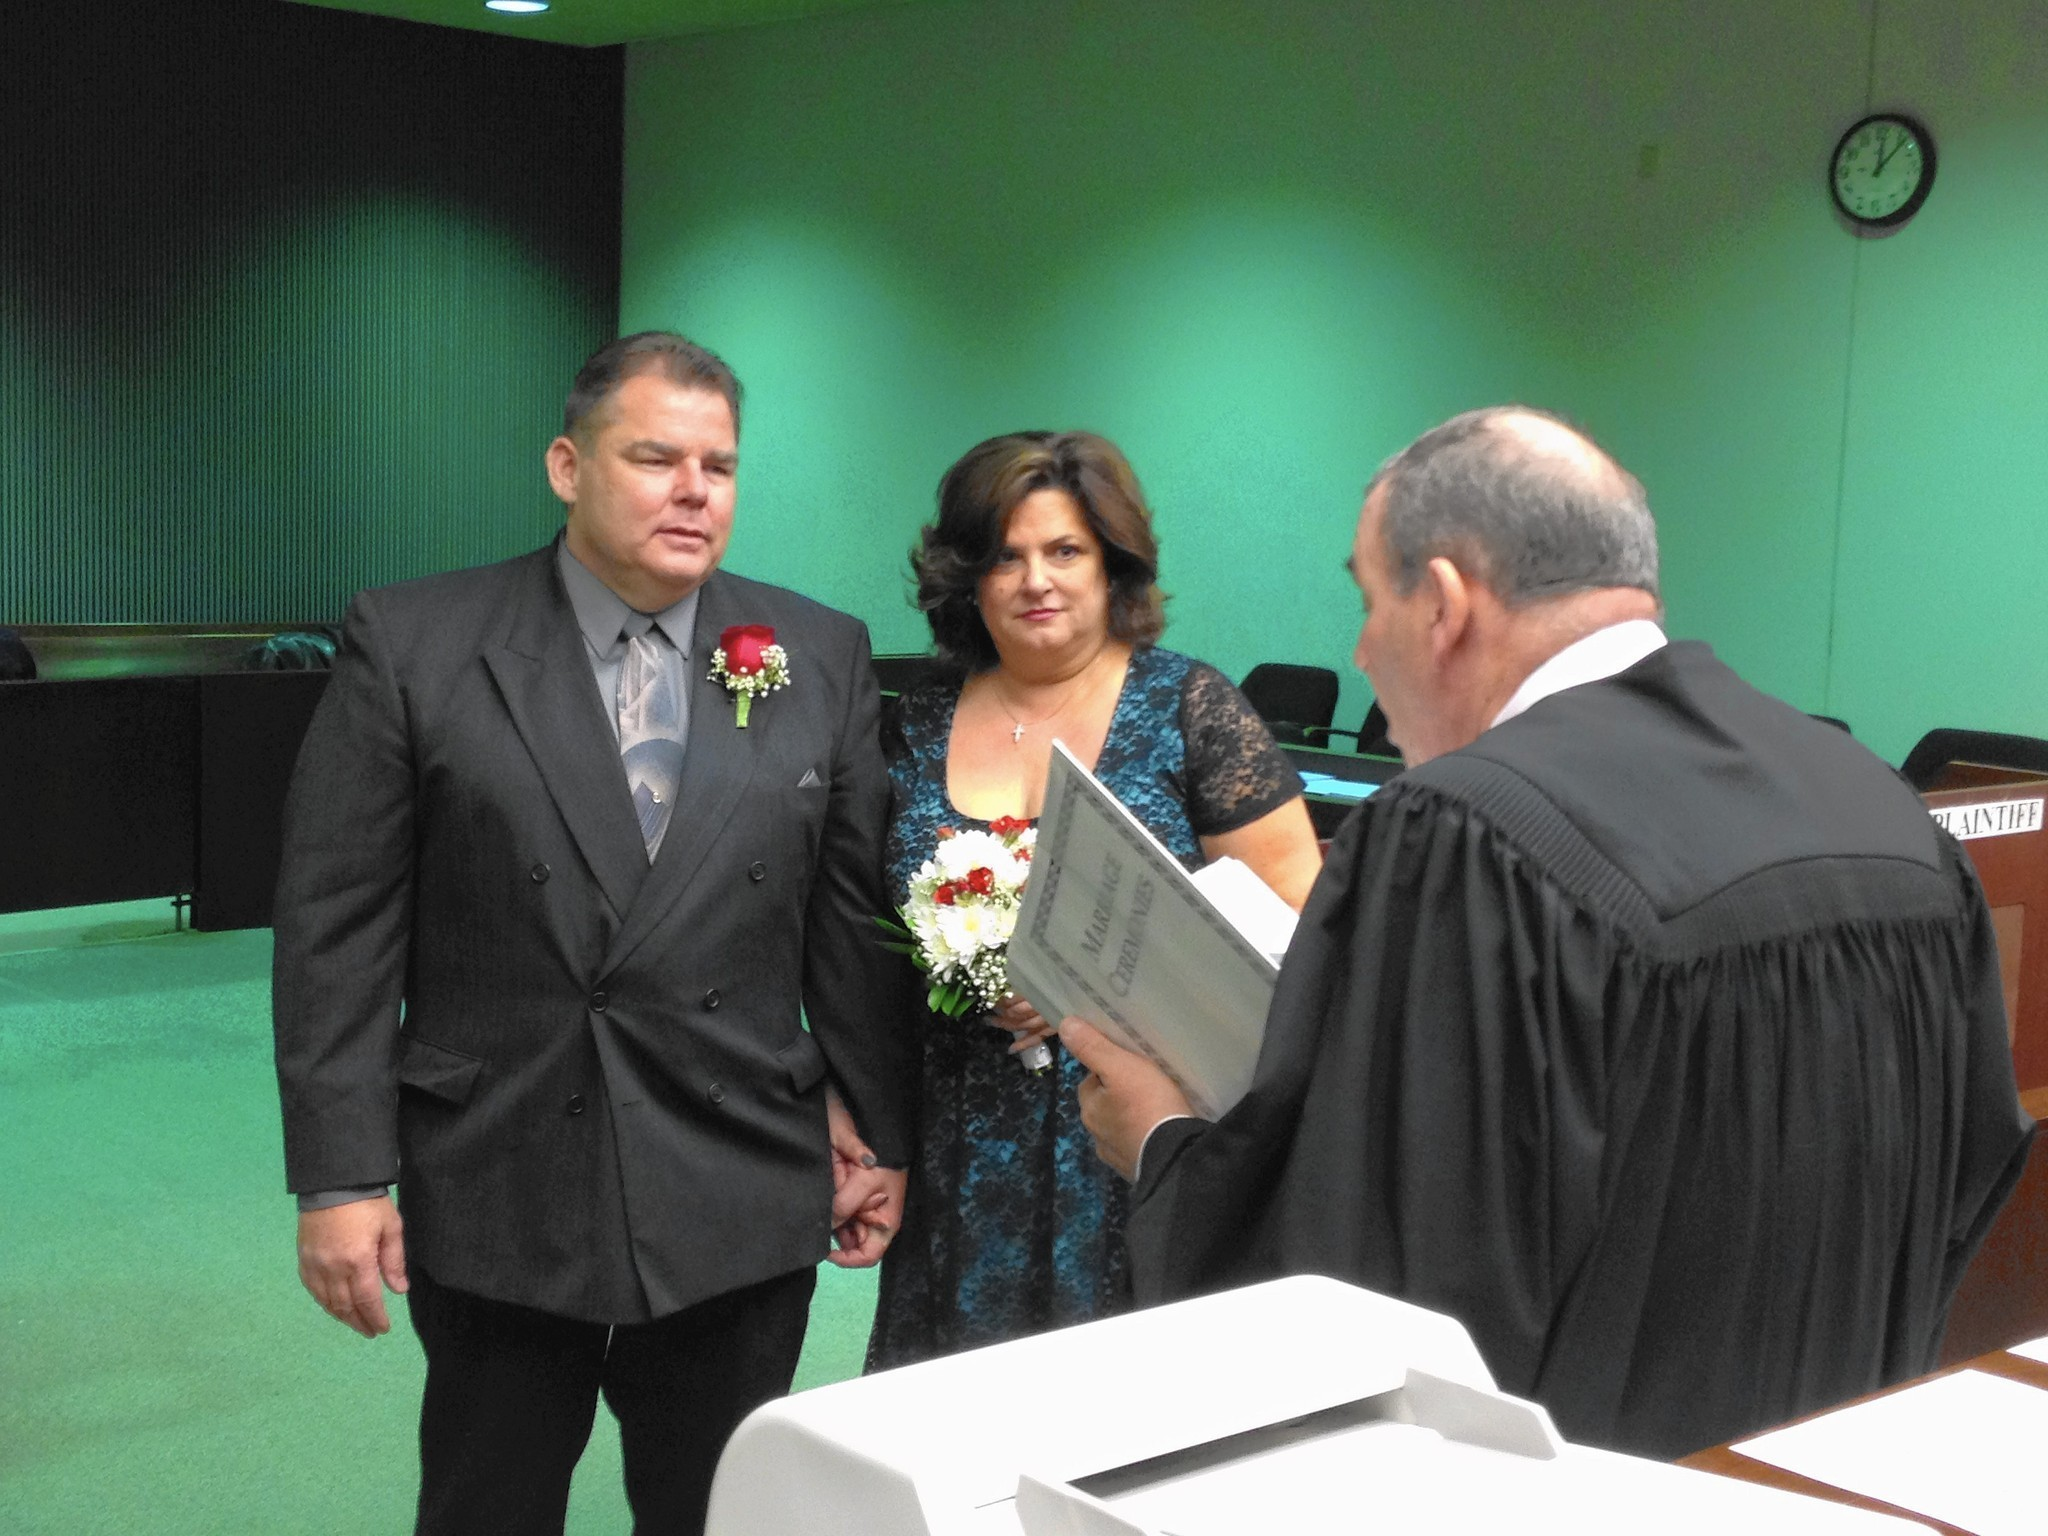 Attractive Arlington Heights Couple Marries After 22 Years, Cancer   Chicago Tribune